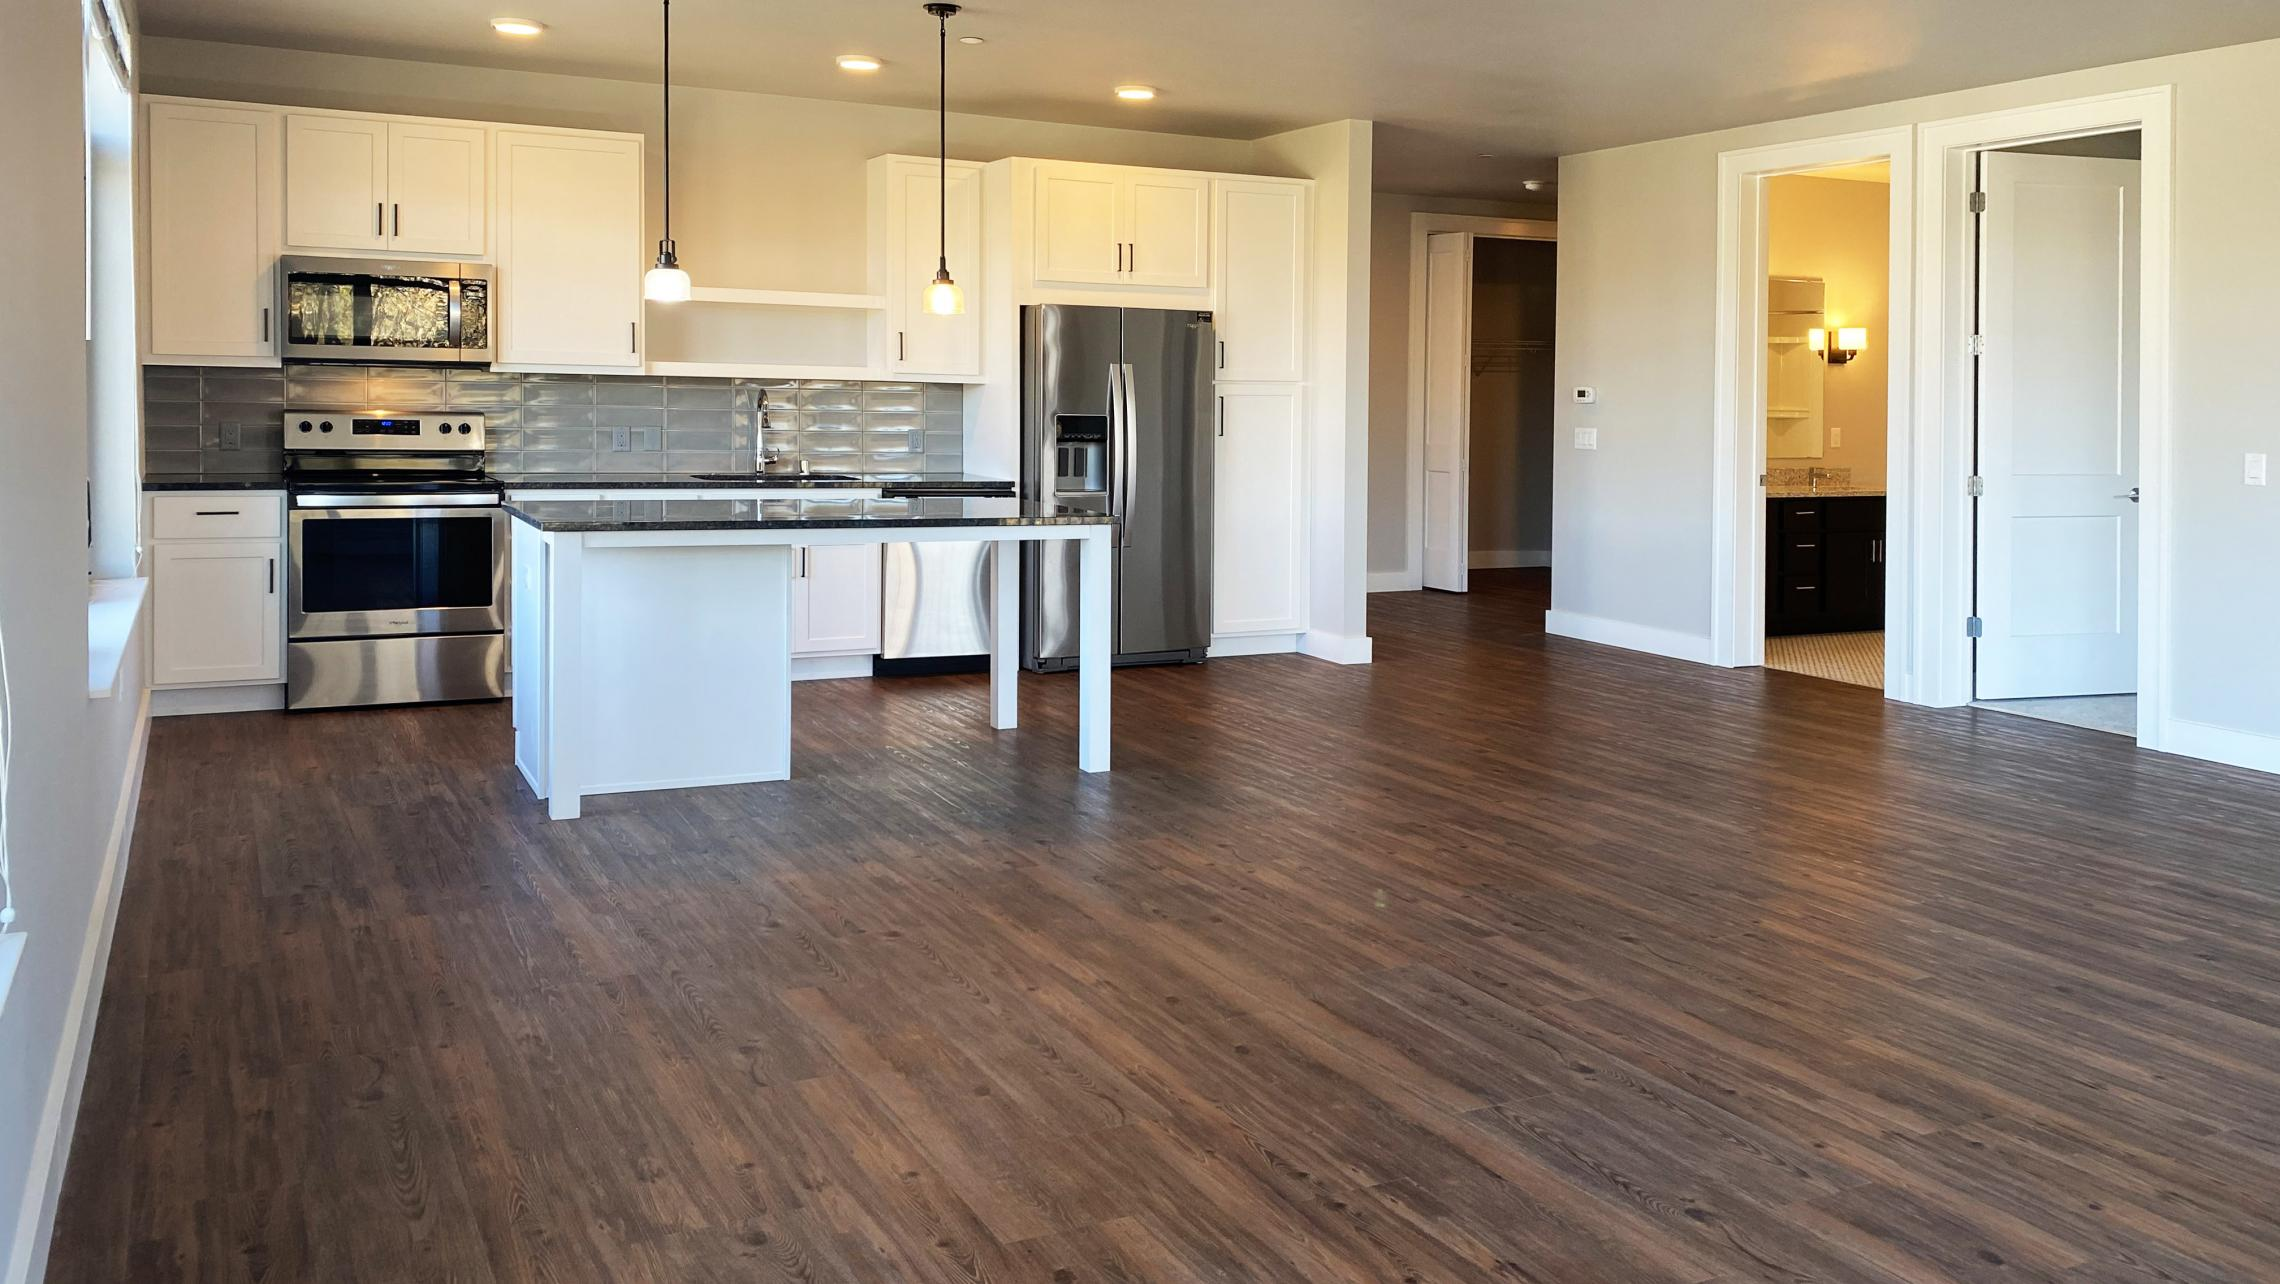 1722-Monroe-Apartments-320-Three-Bedroom-Modern-Upscale-Design-Windows-Natural-Light-Balcony-Gym-Terrace-Living-Luxury-Lounge-Madison-Views-Living-Space-Kitchen